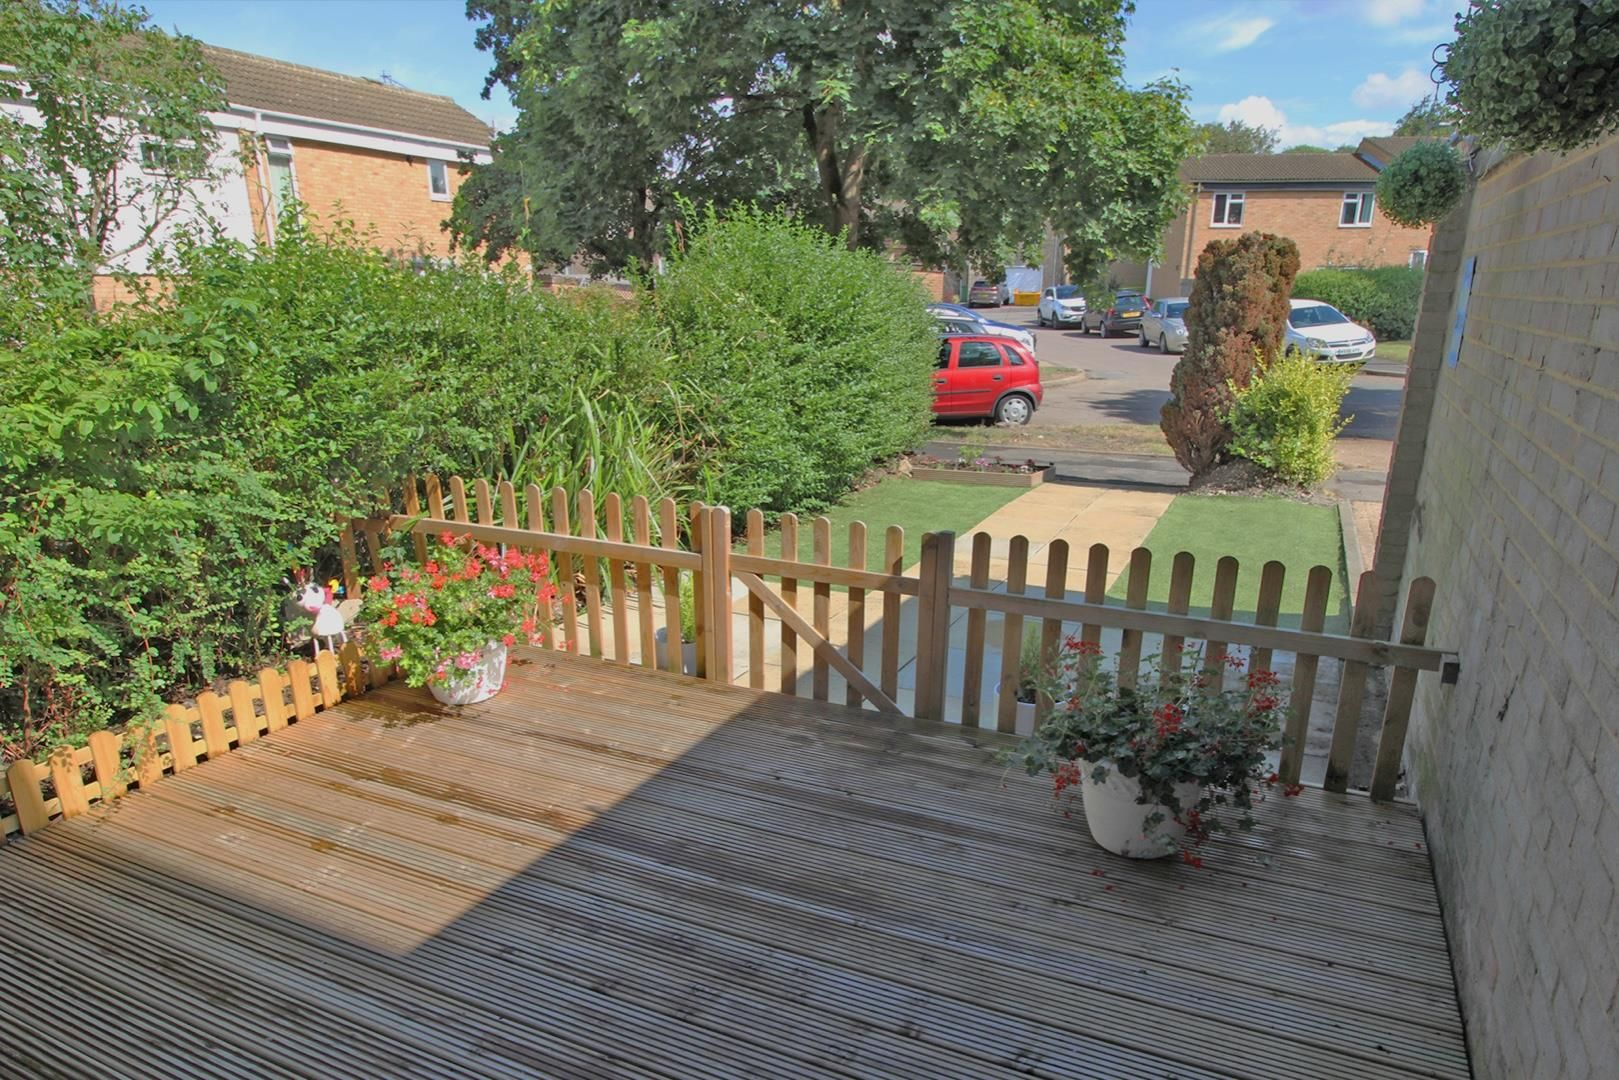 3 bed terraced for sale in Hanworth  - Property Image 2